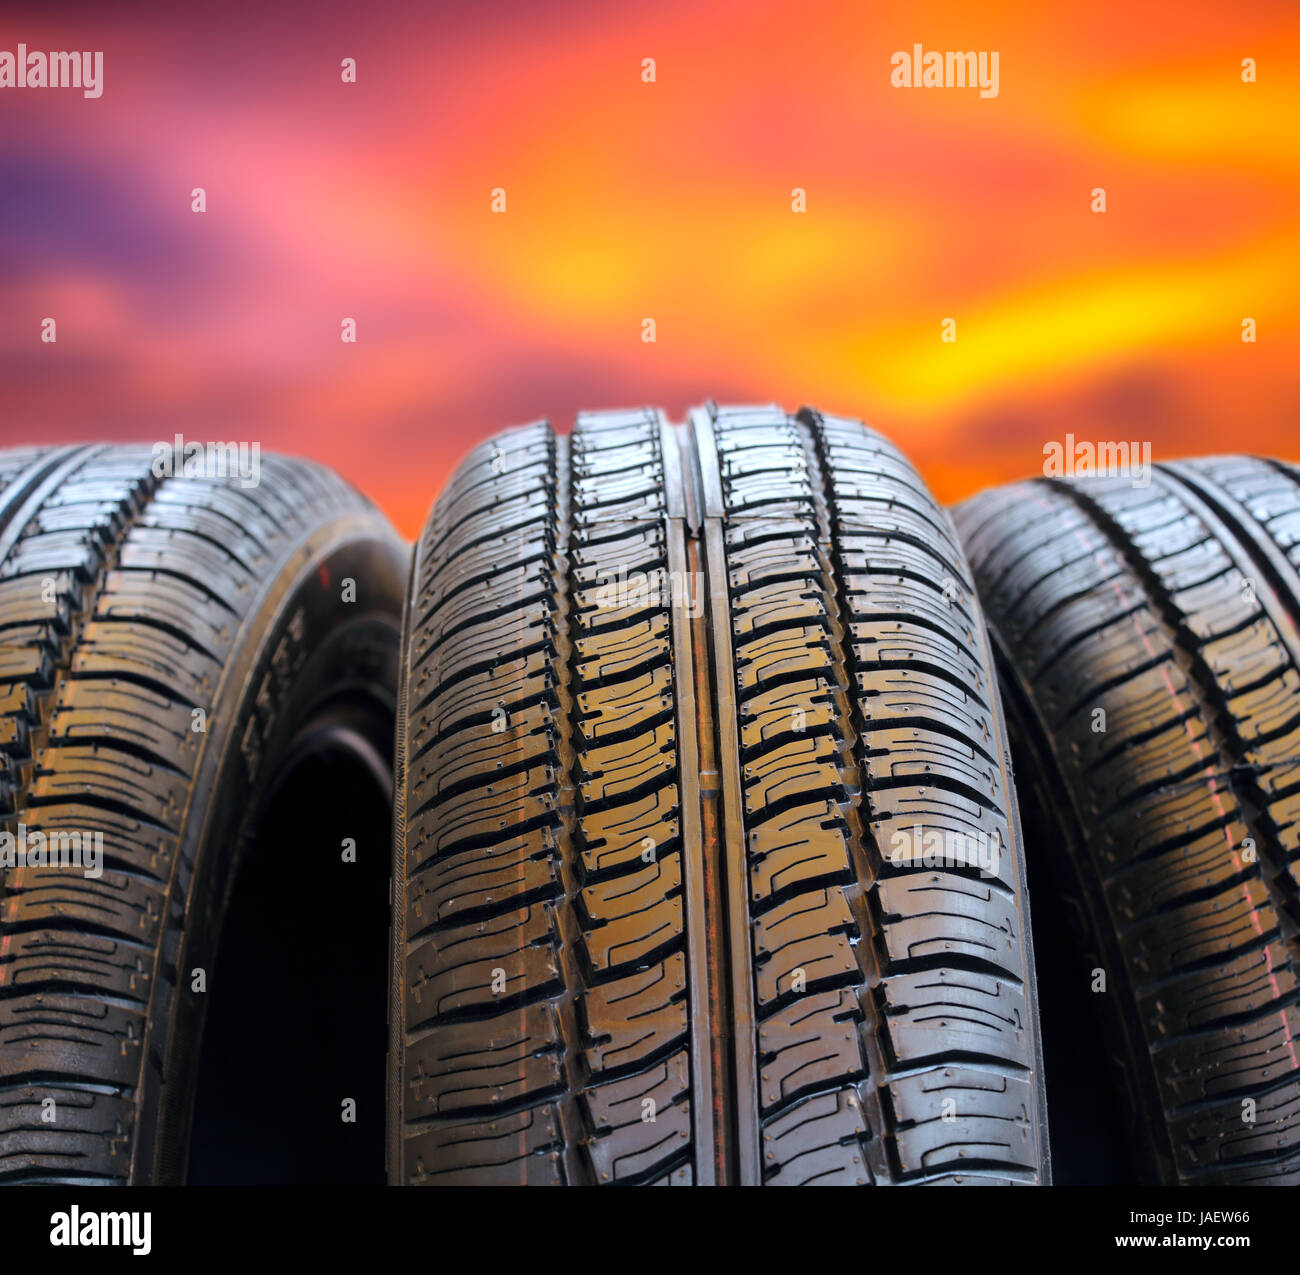 Set of tires against the evening sunset. - Stock Image